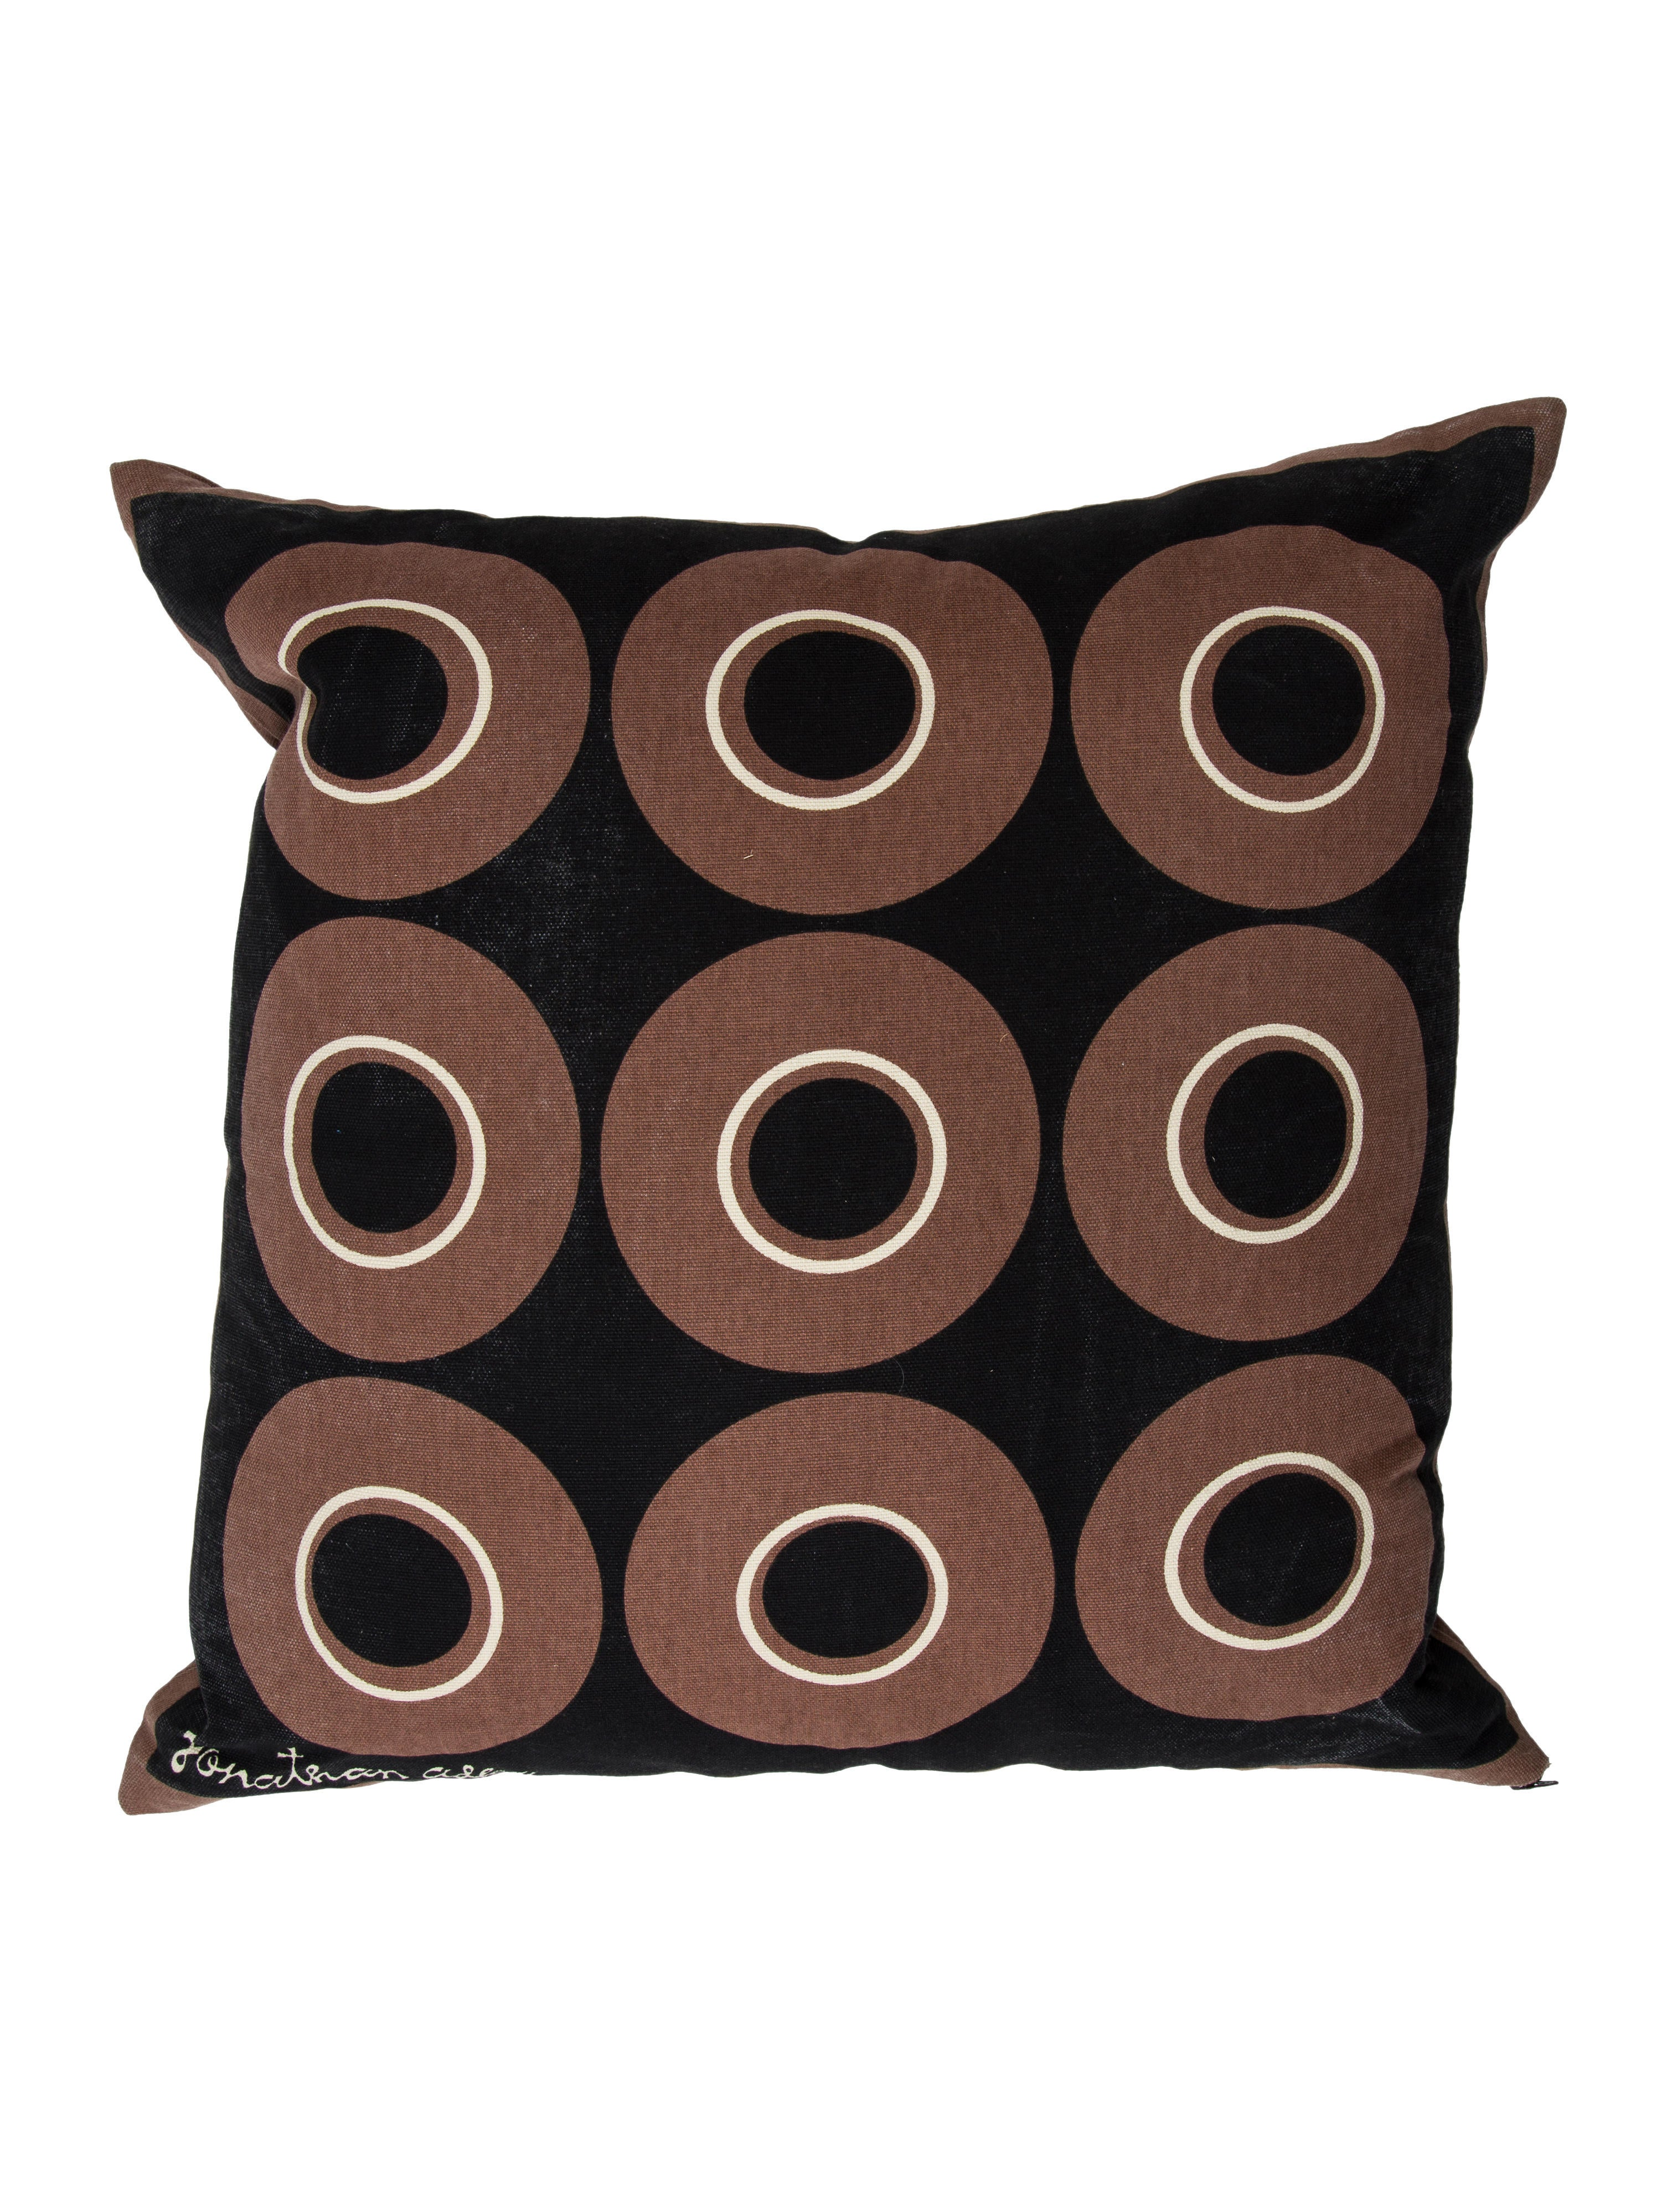 Throw Pillows Justice : Jonathan Adler Geometric Throw Pillow - Bedding And Bath - JTADL20743 The RealReal